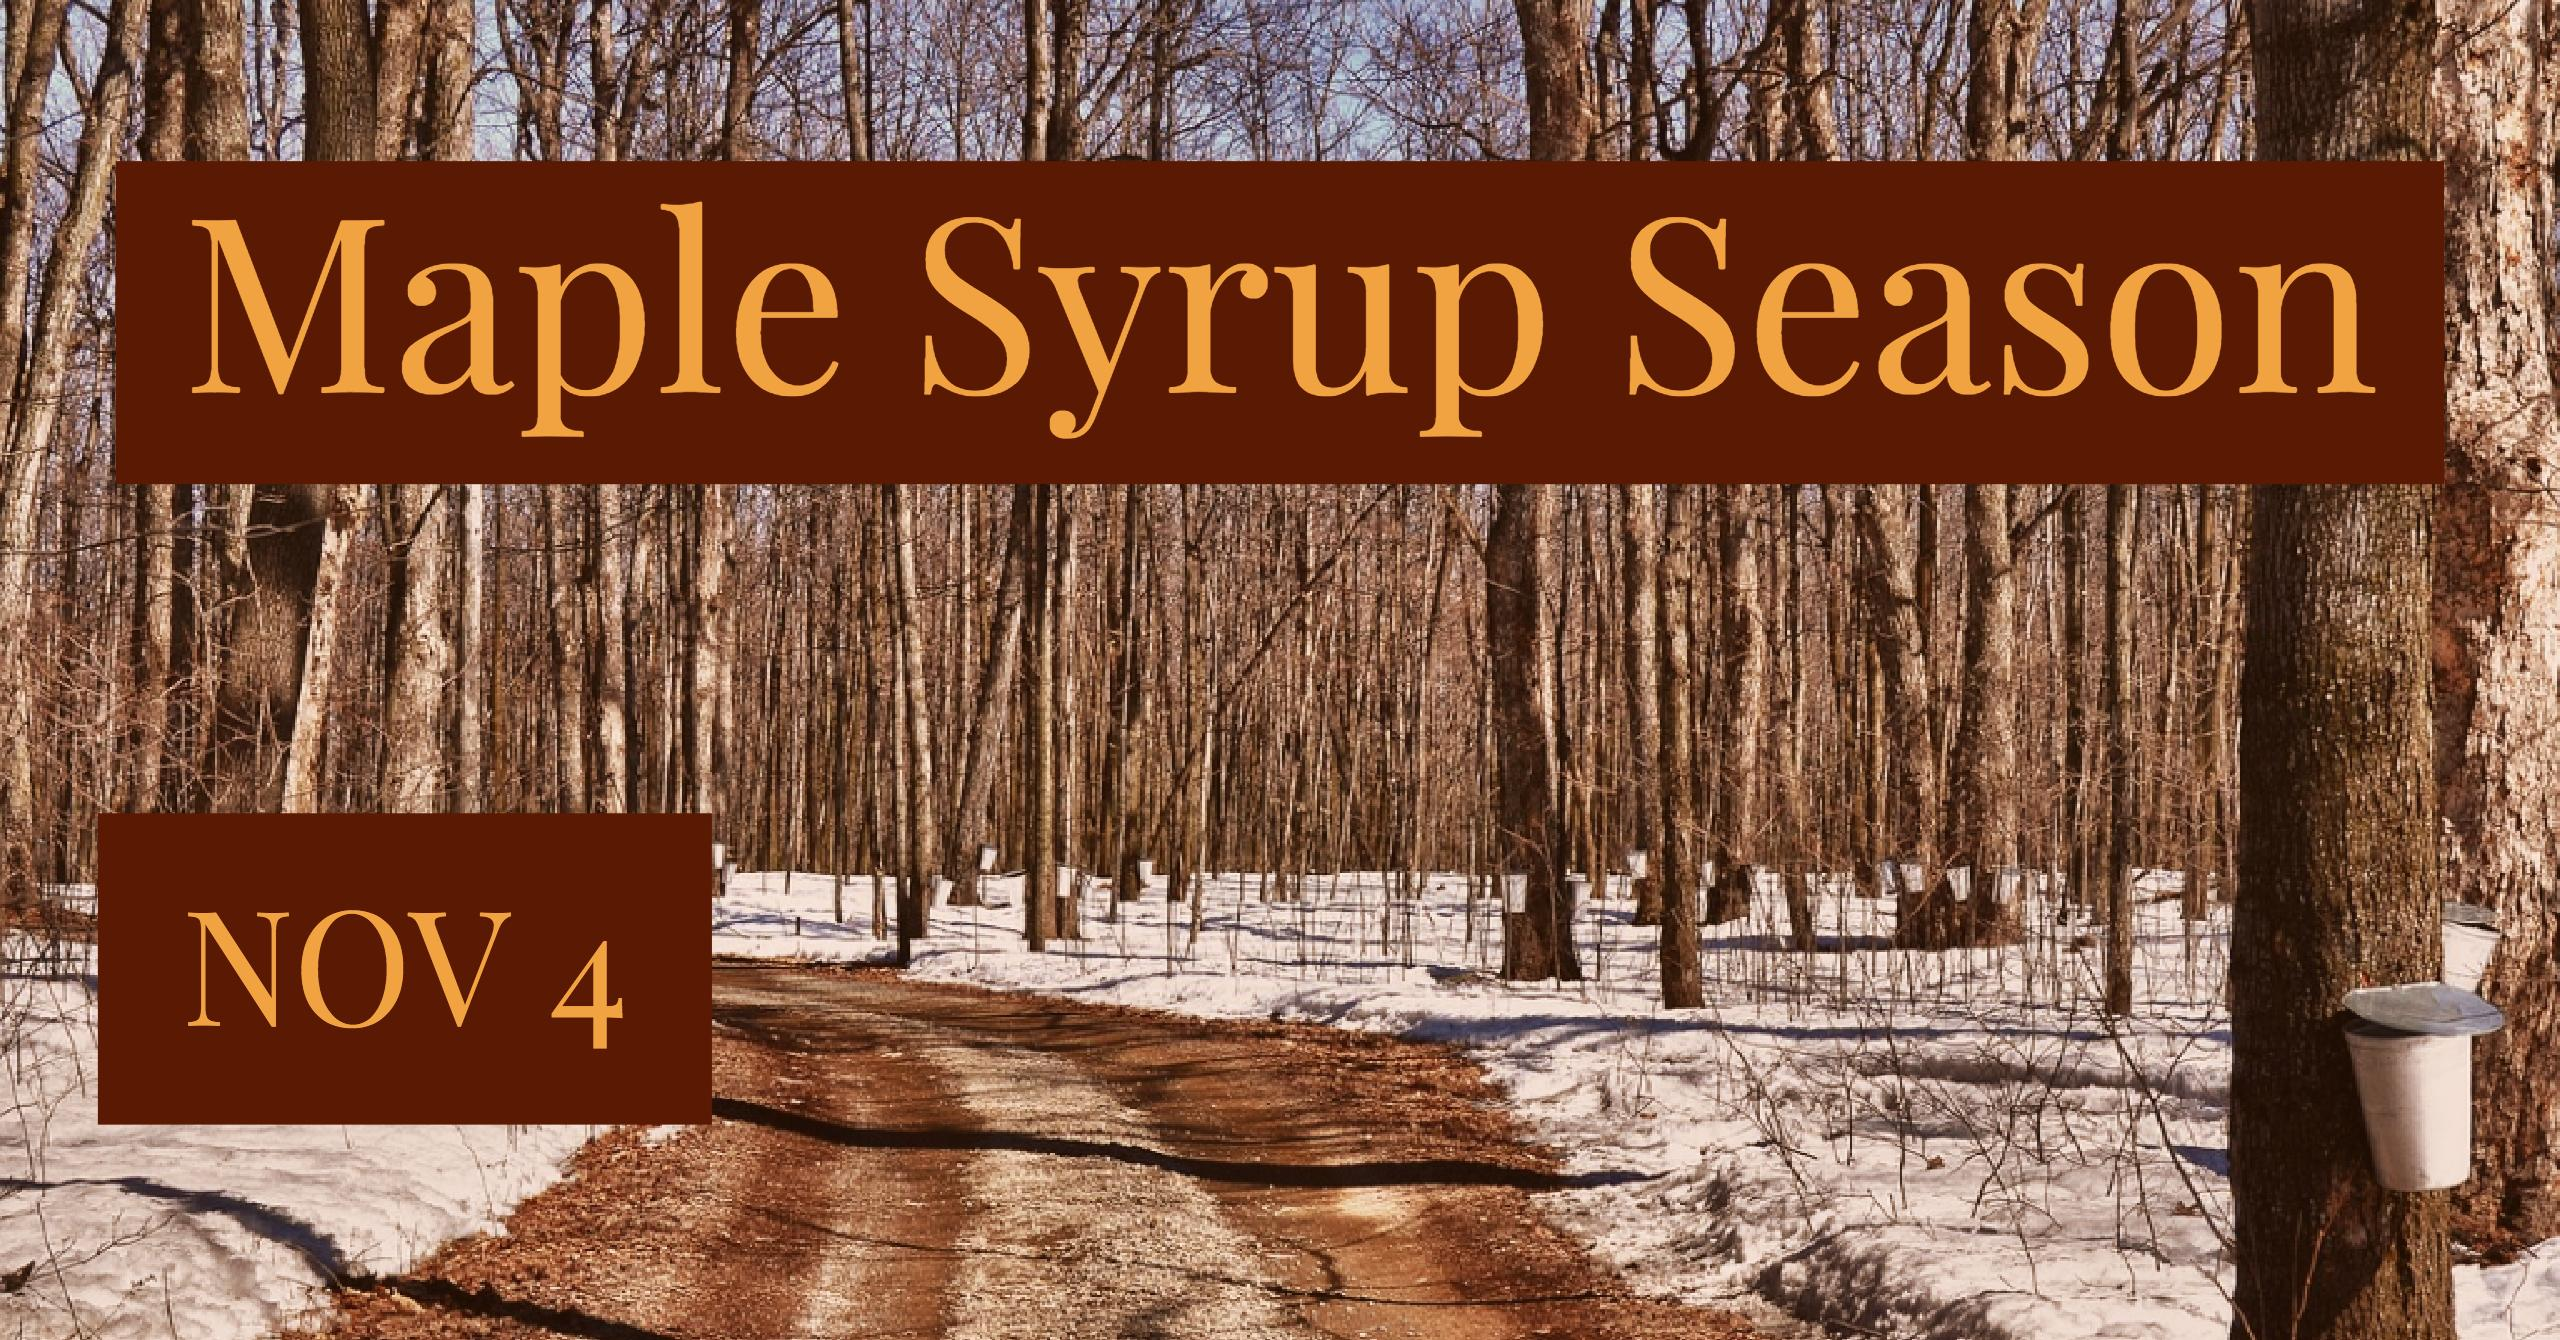 Preparing for the Maple Syrup Season